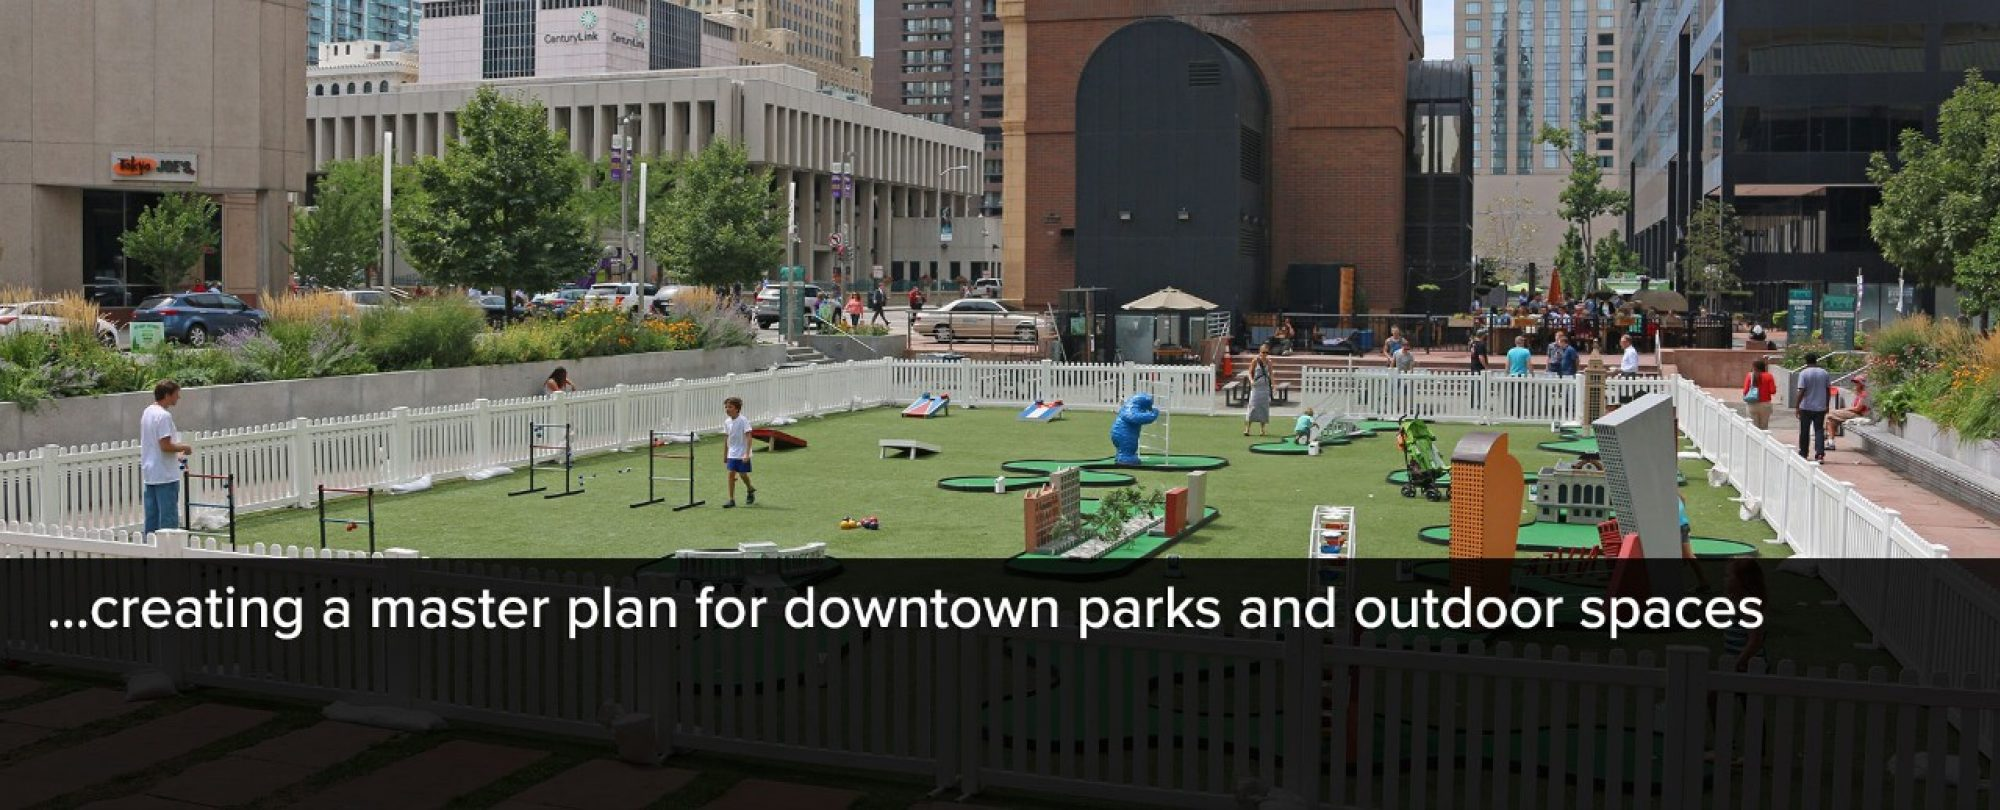 Photo of Skyline Park put-put golf. Denver is creating a master plan for downtown parks and outdoor spaces